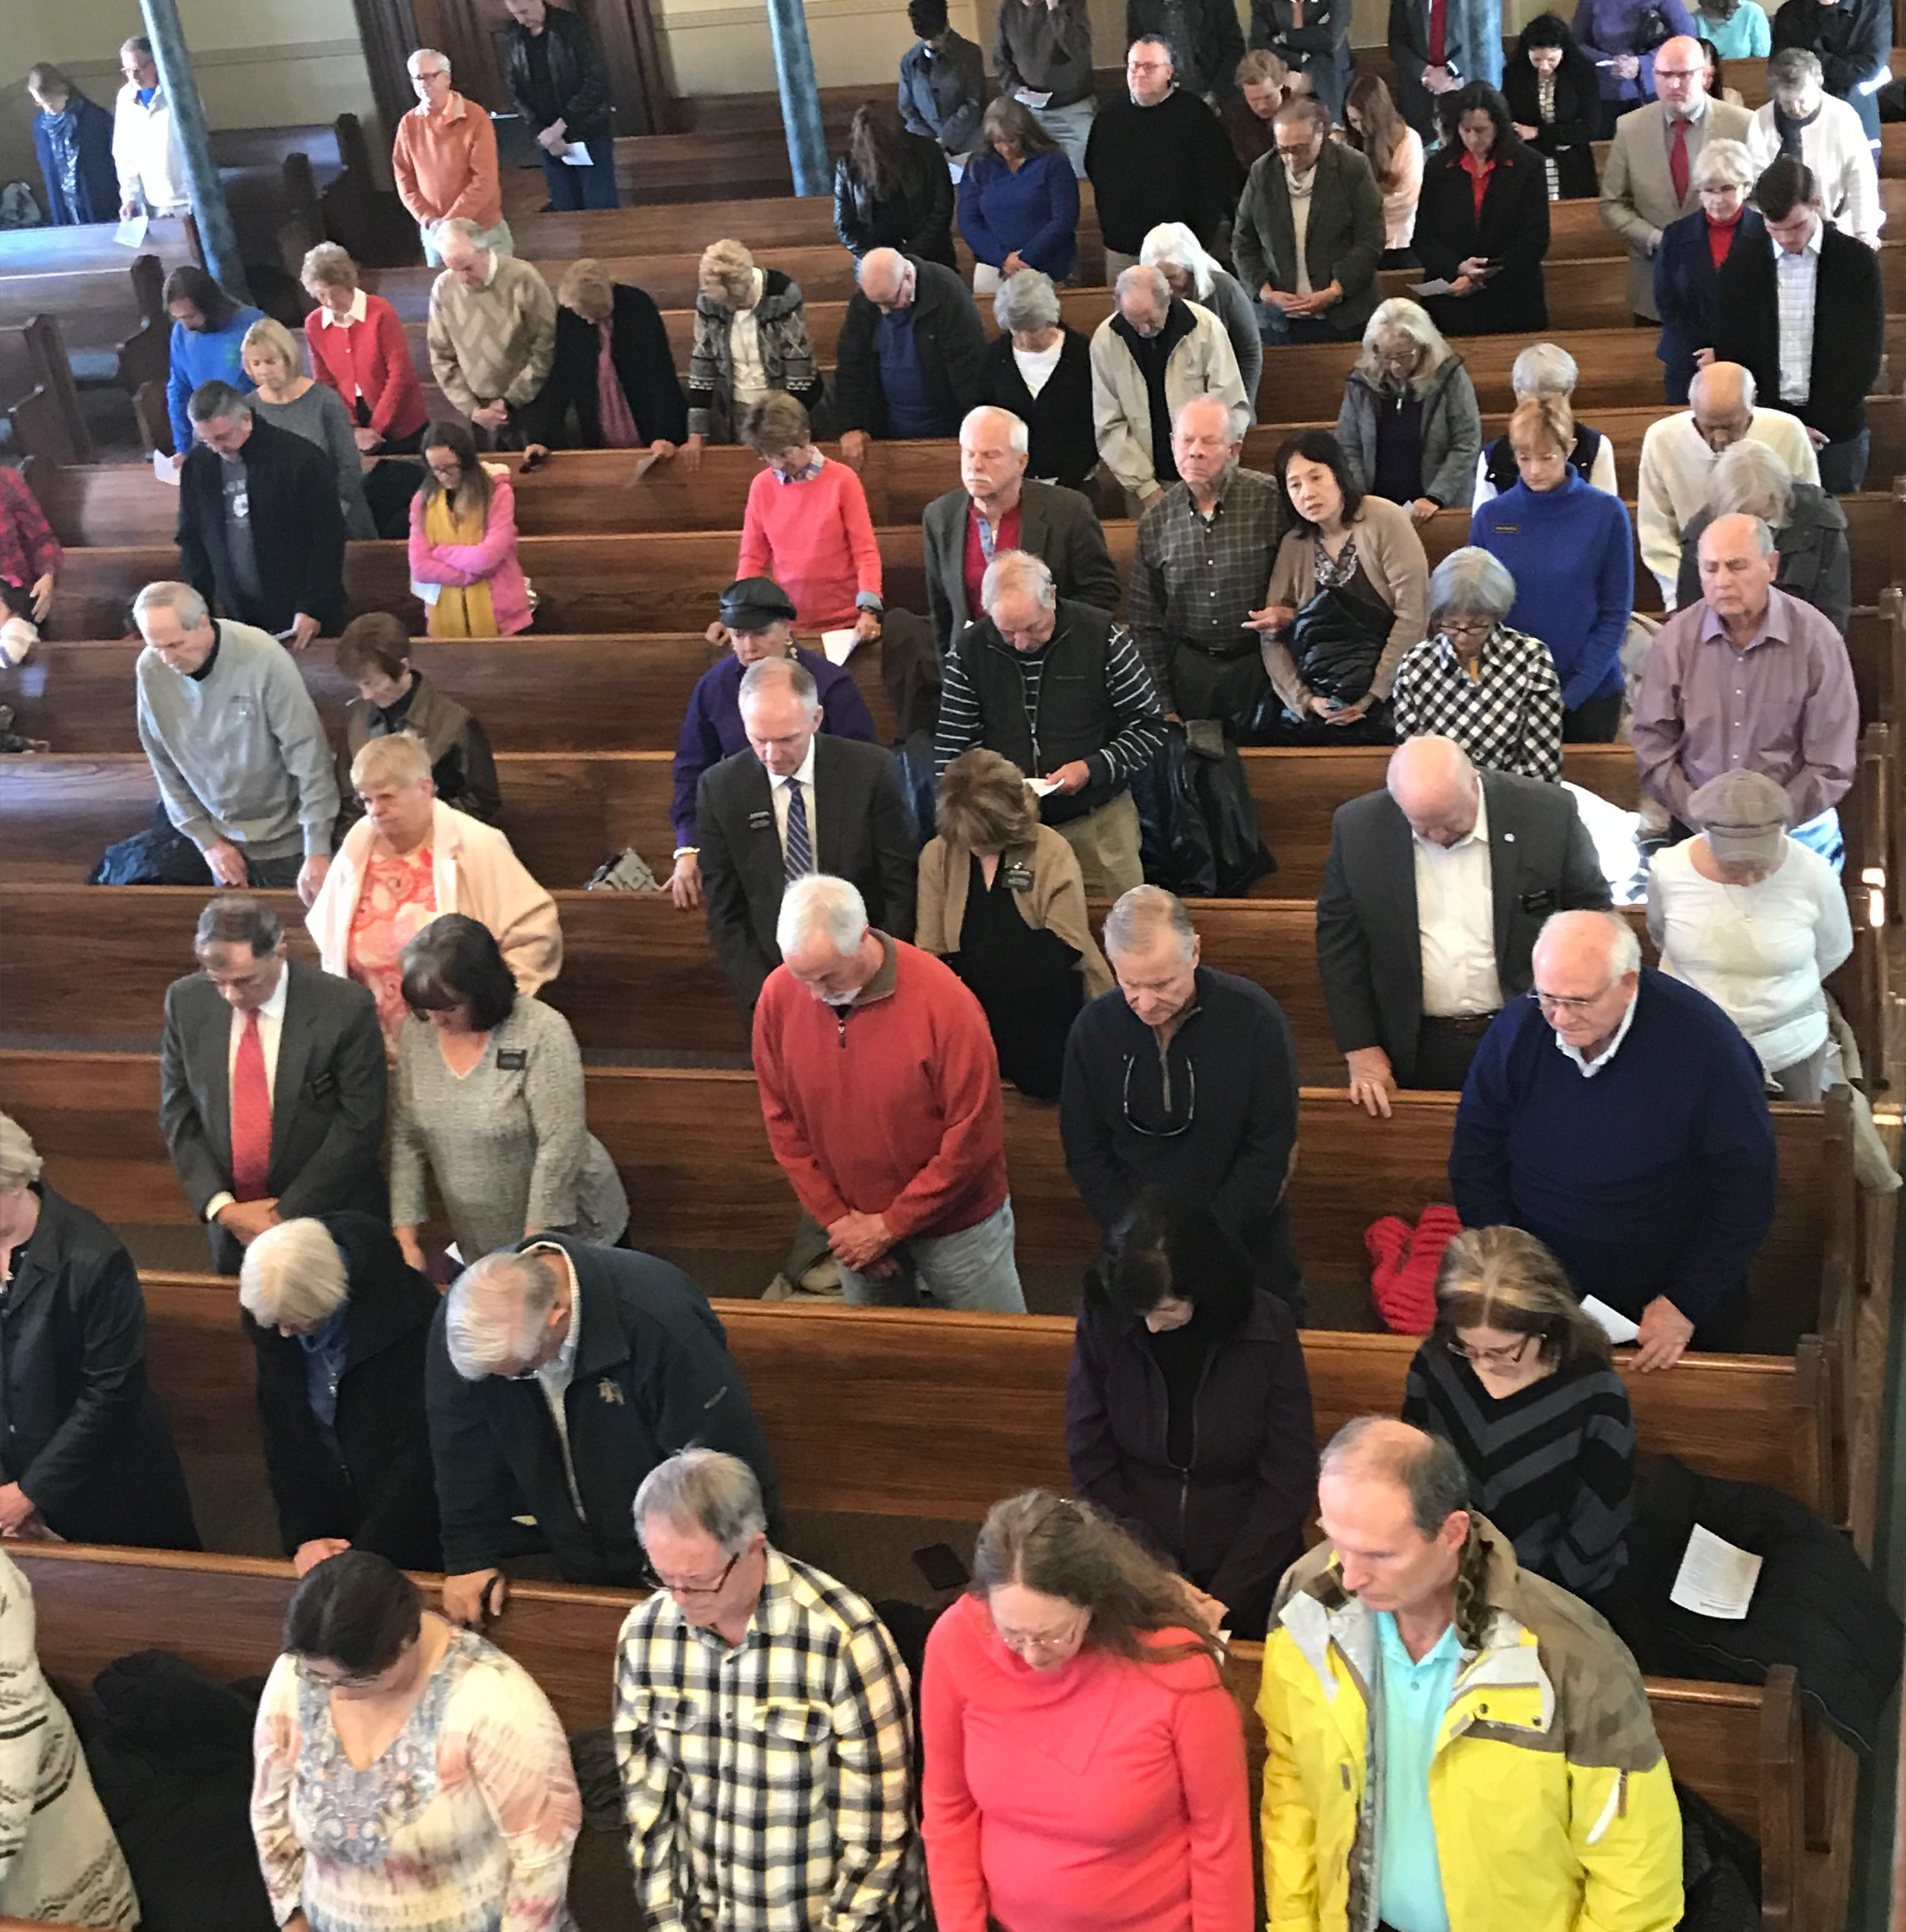 Prayer Over the City offers 'unity' if not 'uniformity'